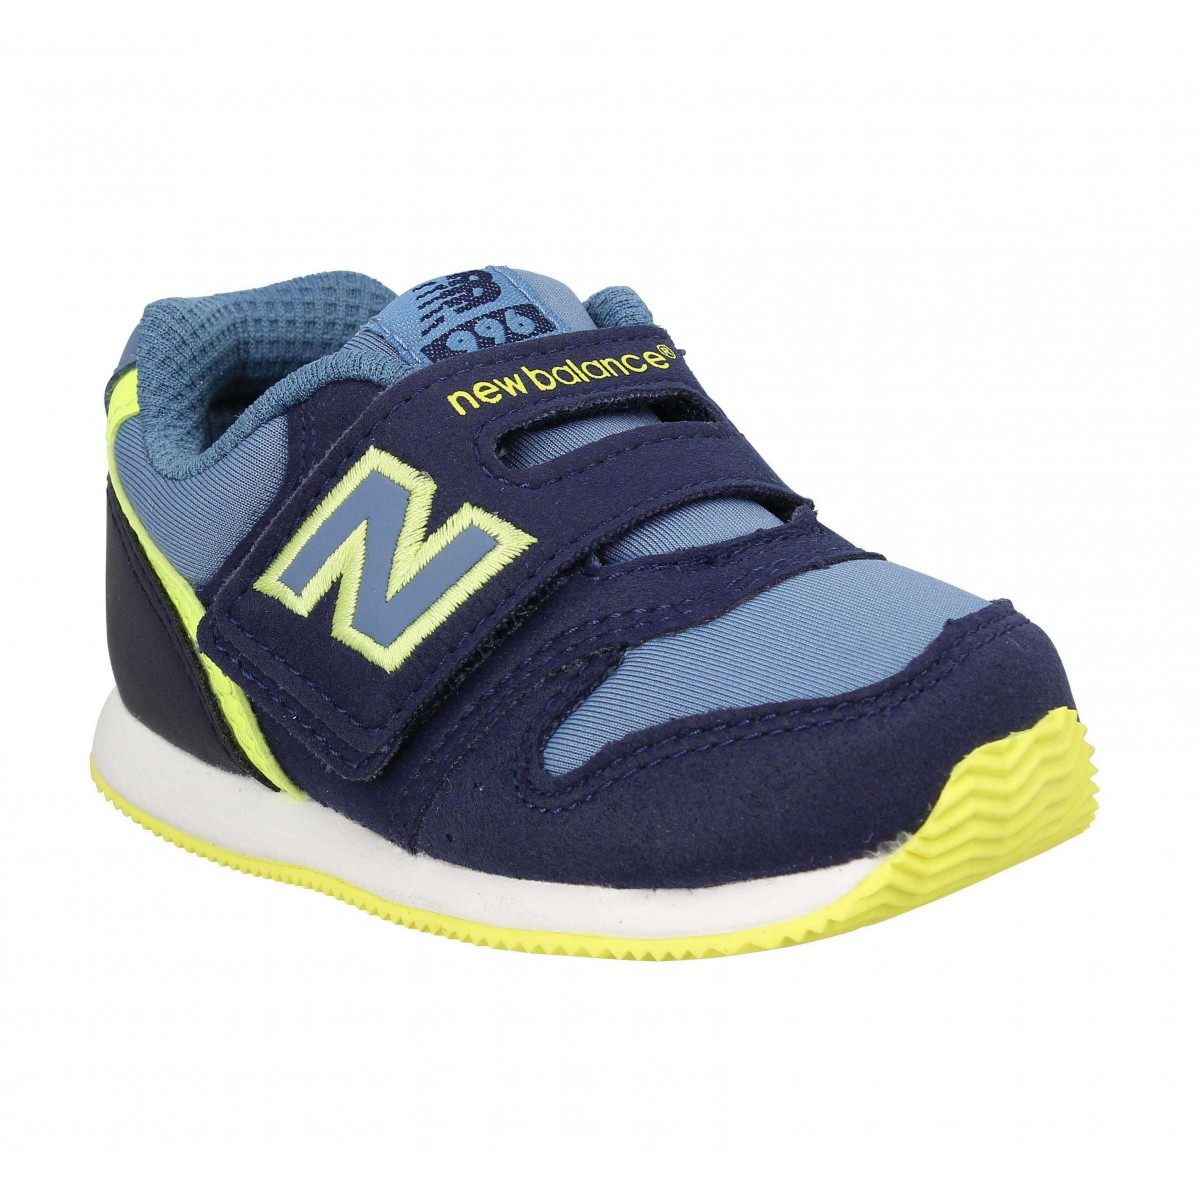 Baskets NEW BALANCE FS996 toile Enfant Marine